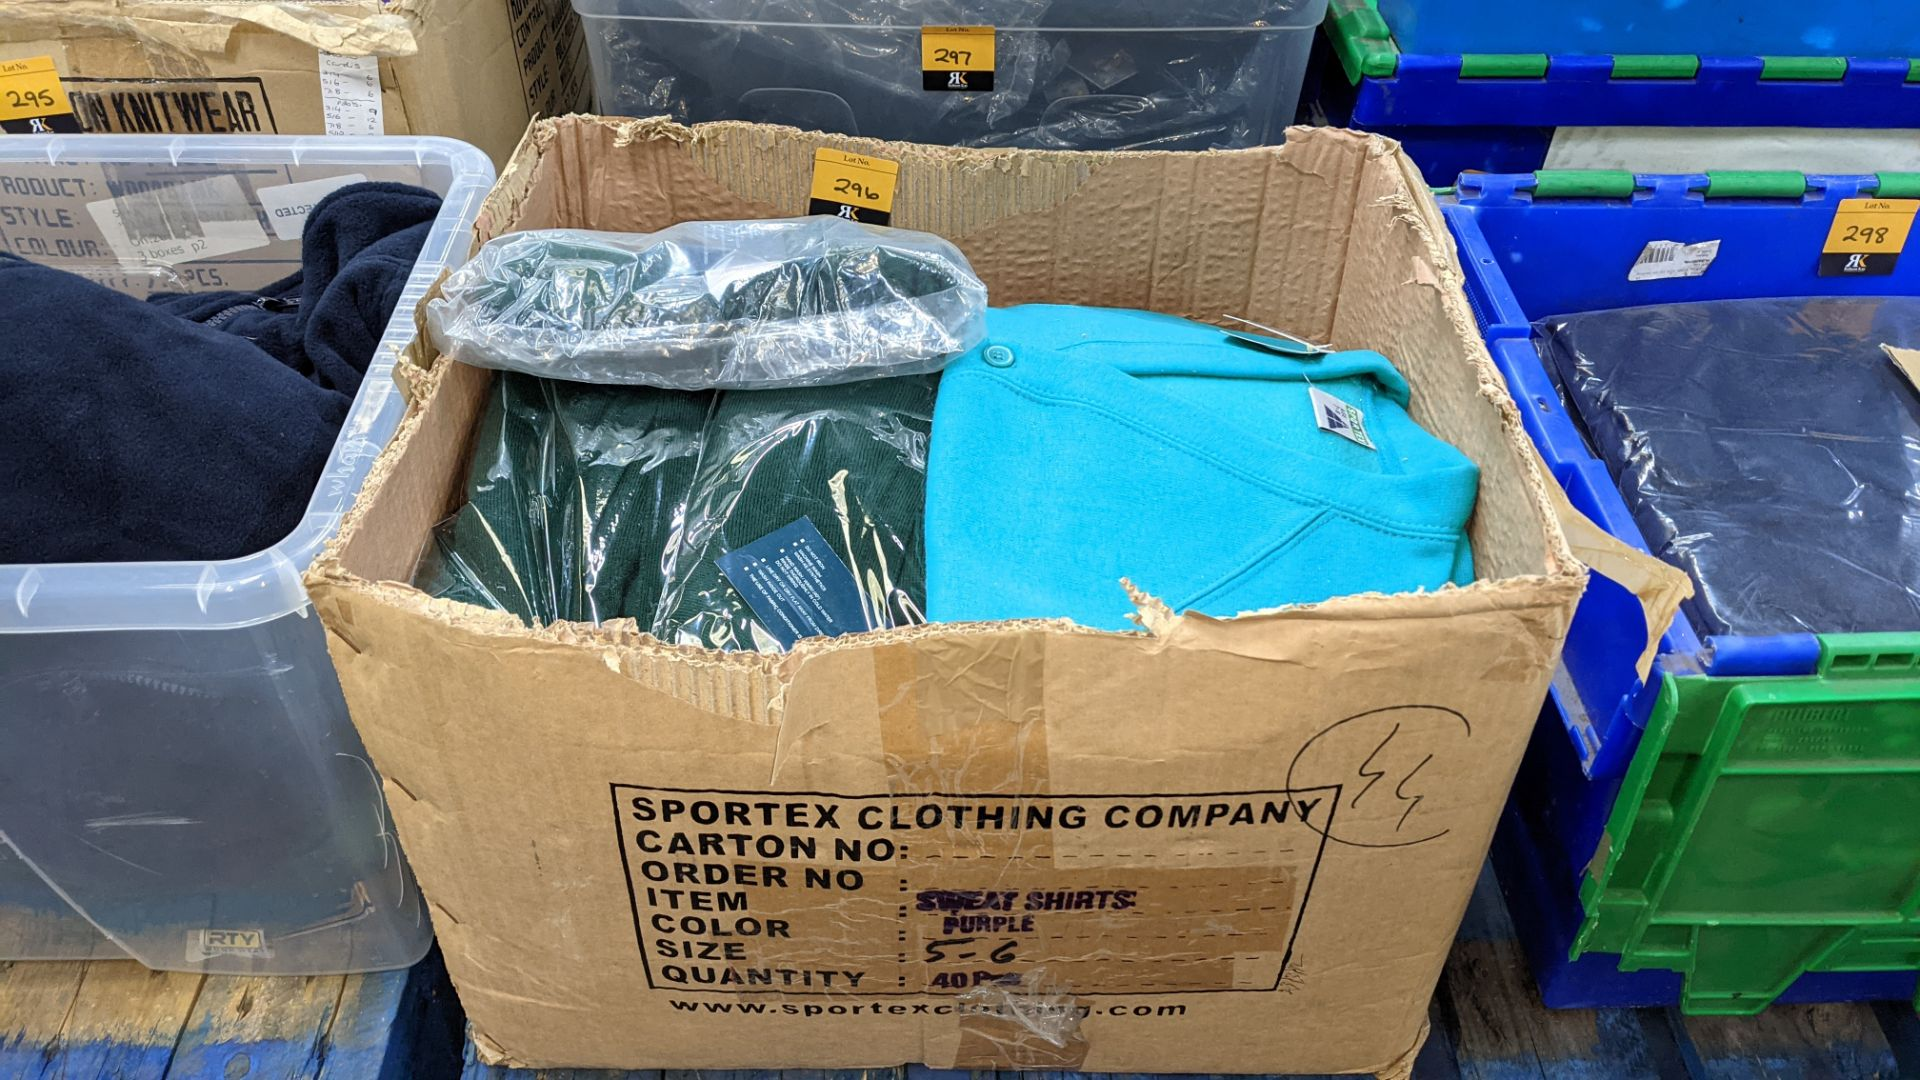 Approx 18 off Rowlinson children's green button up sweat tops - 1 large box - Image 2 of 6